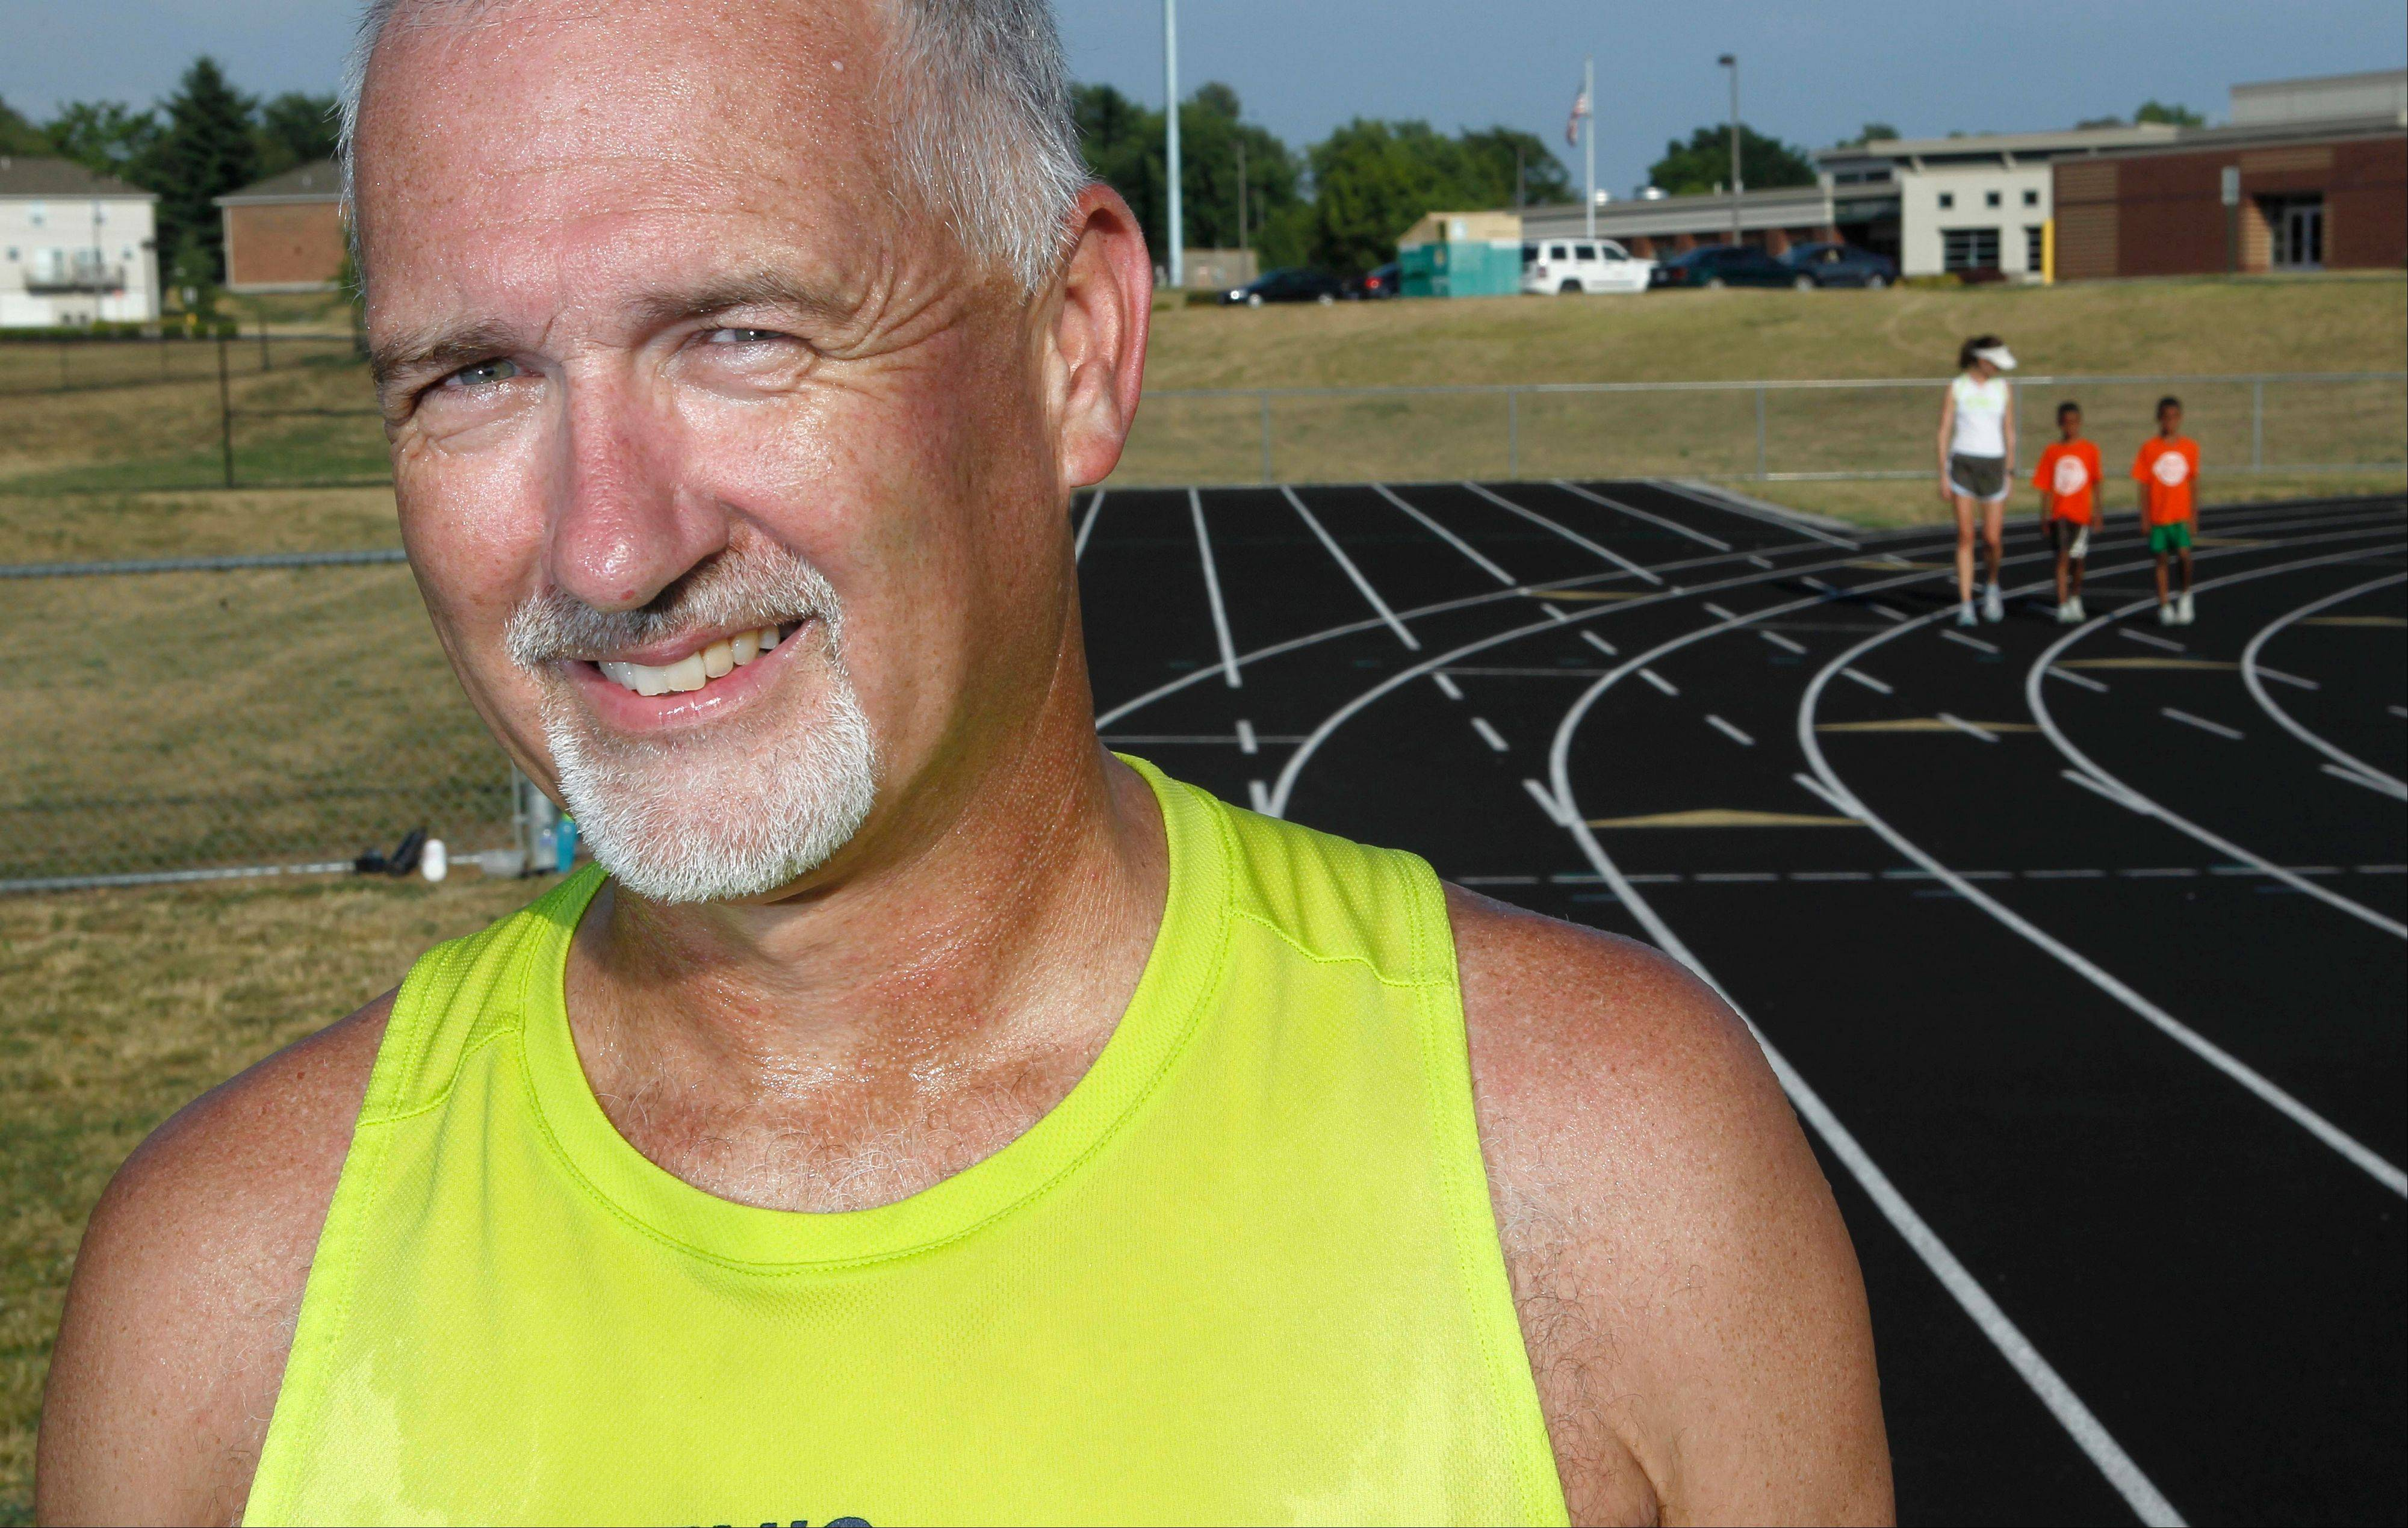 Art Sheridan, 52, of Swansea, is seen at the track at Shiloh Middle School in Shiloh, Ill.